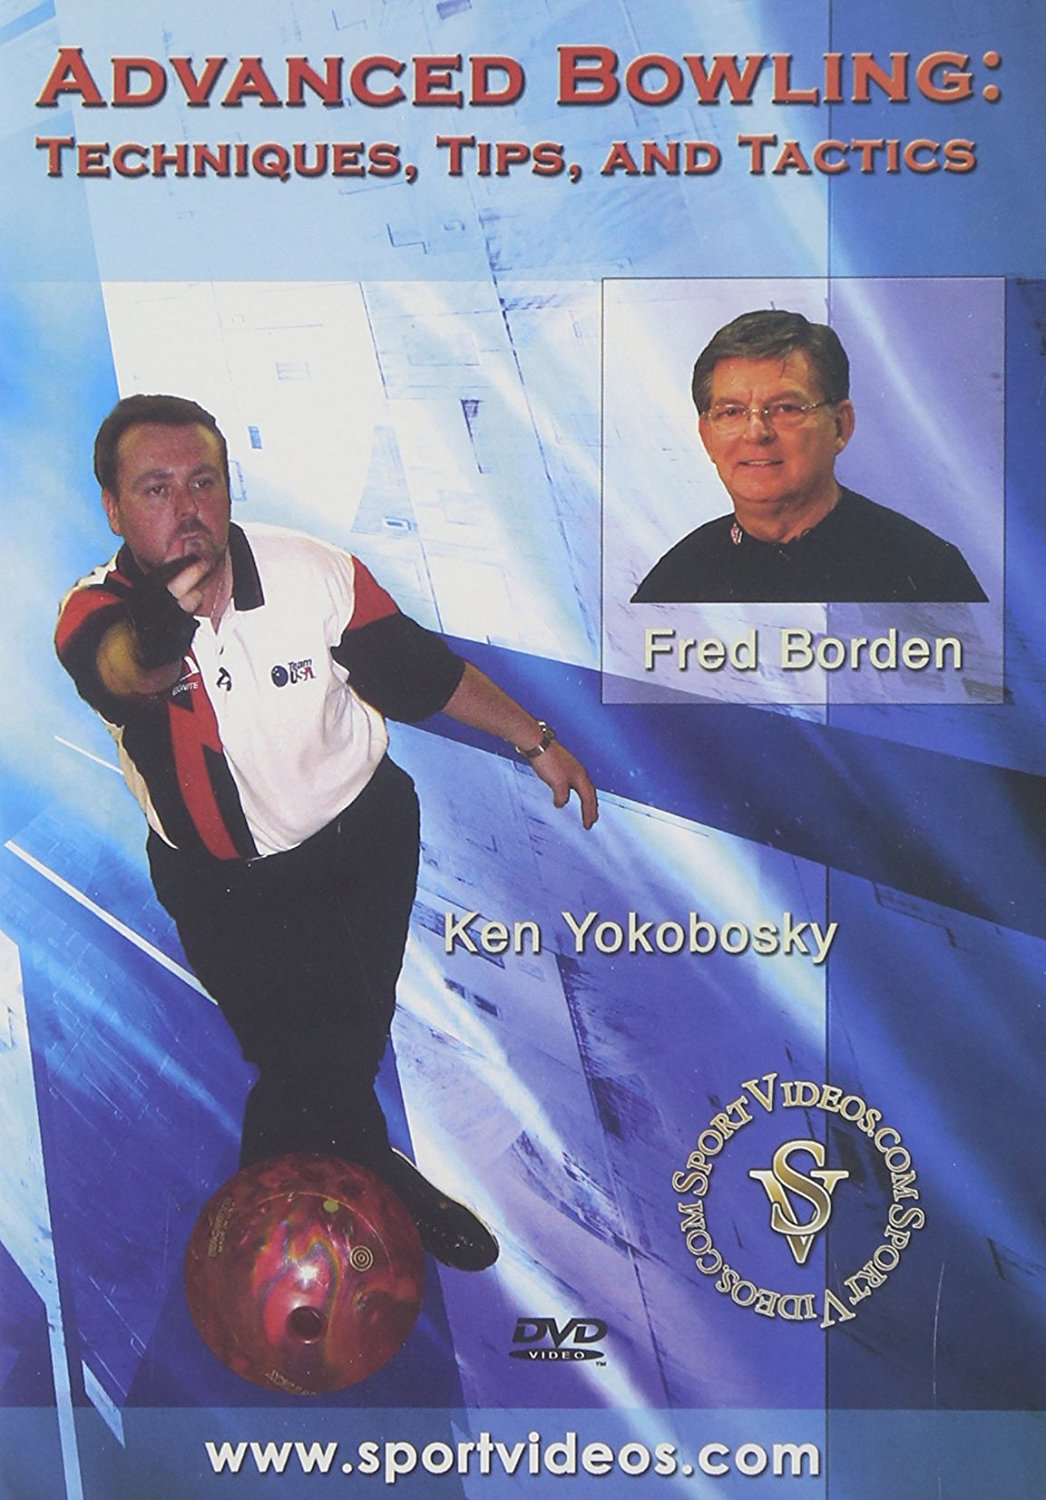 Advanced Bowling DVD or Download - Free Shipping